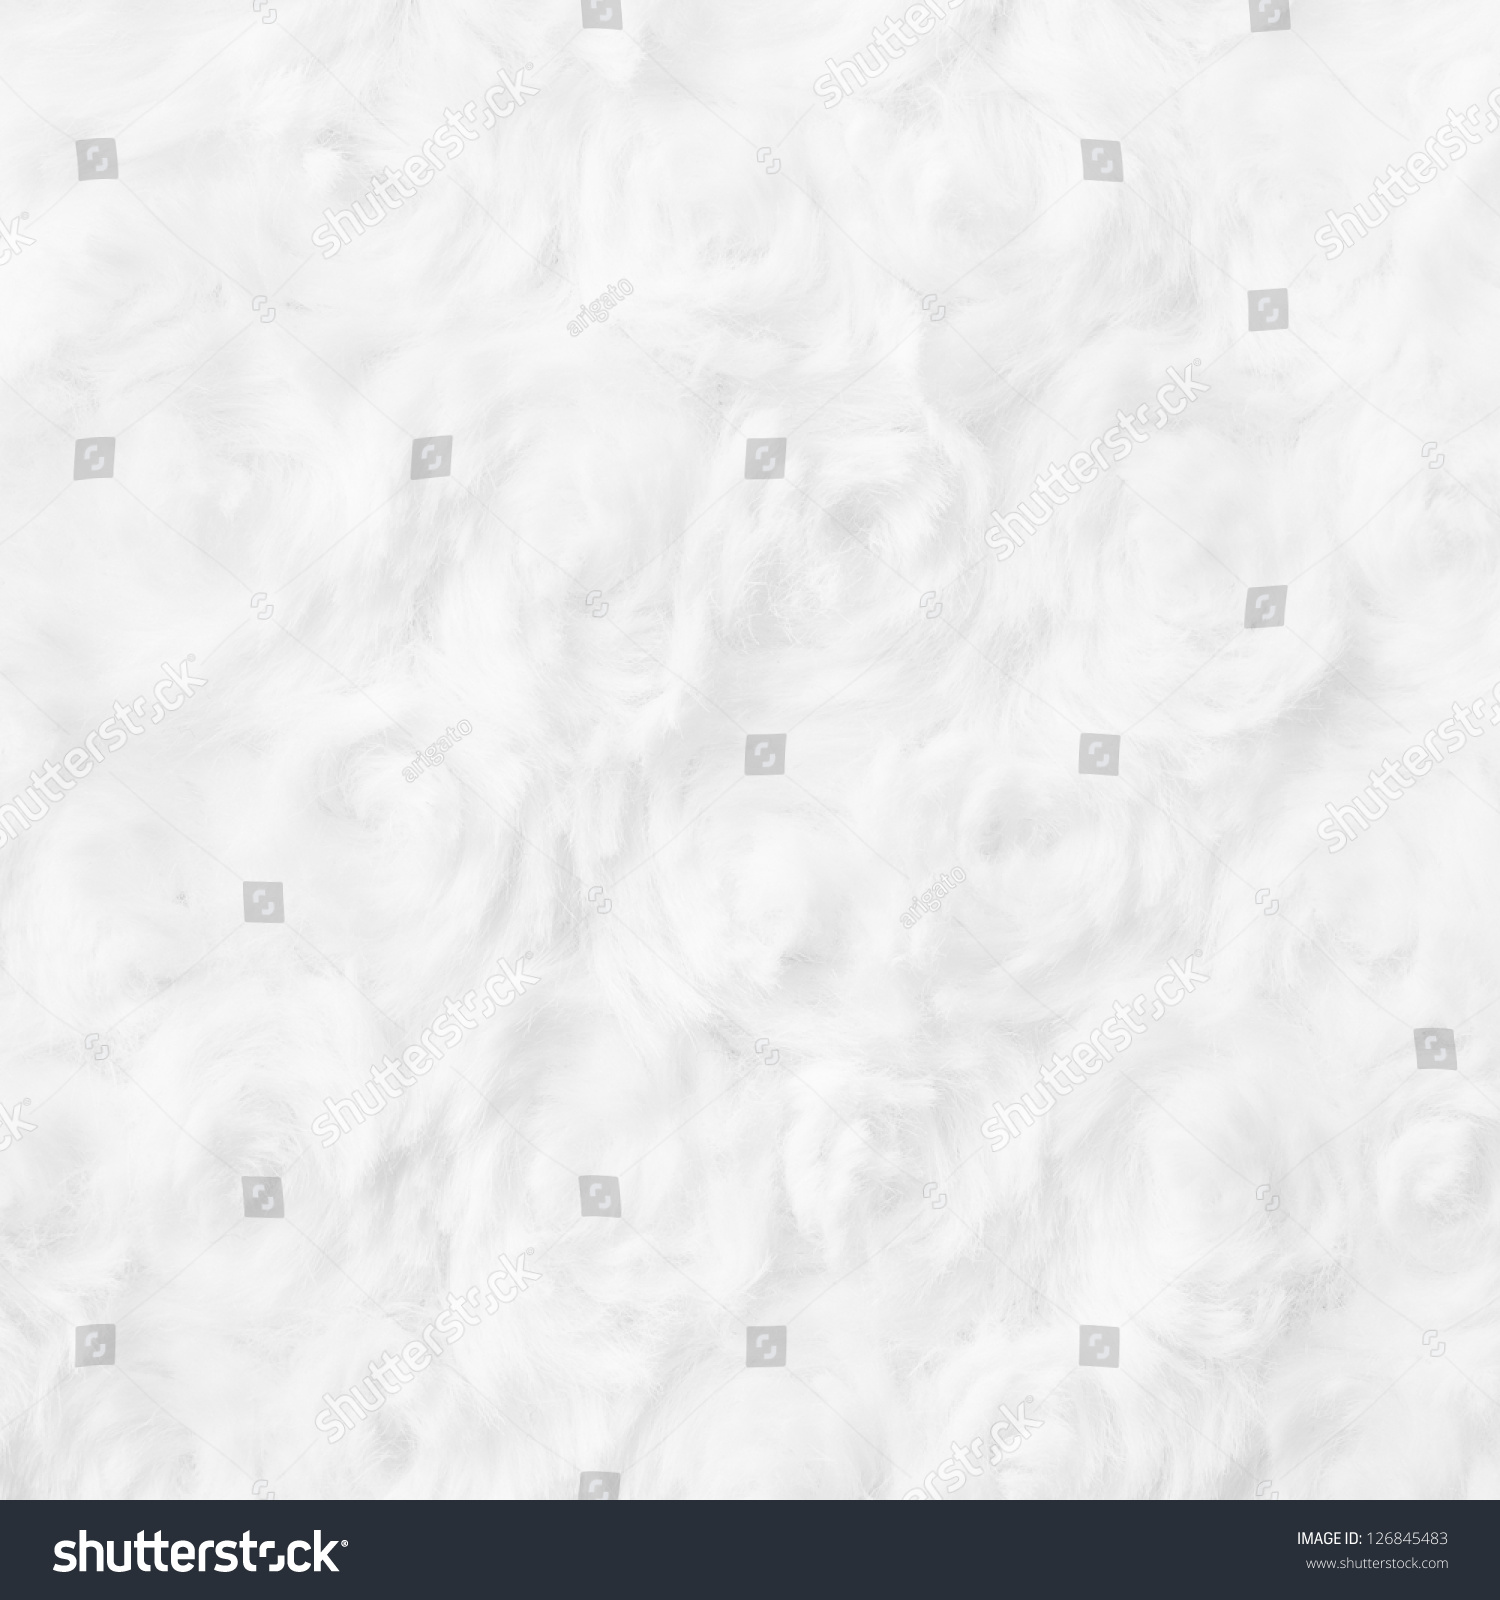 Smooth shaped white stones surface texture background stock photo - Rose Shaped Cotton Wool Texture Background